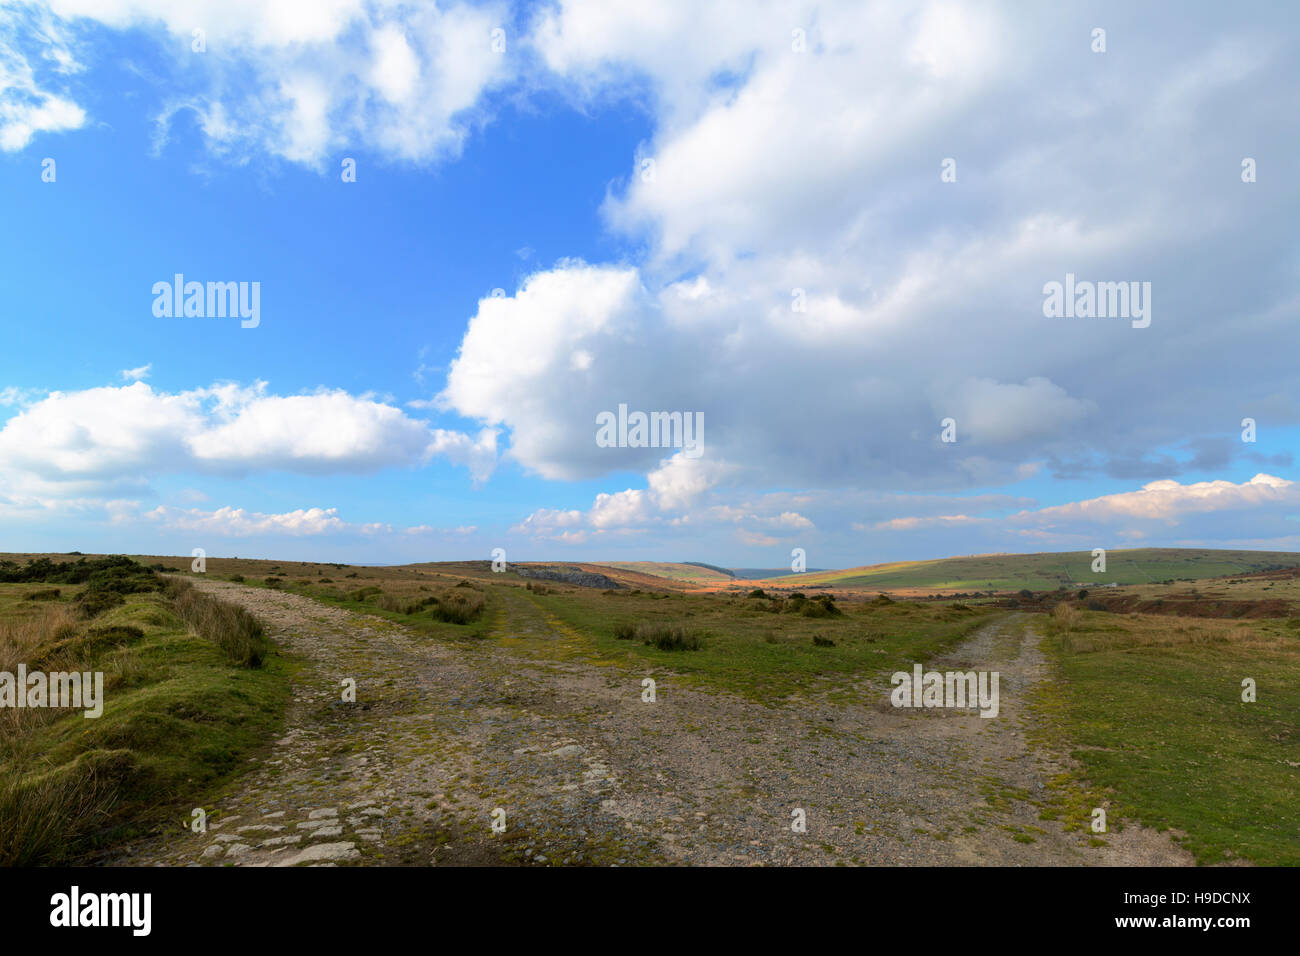 Film location spot opening scenes of current series of Poldark shot here. - Stock Image